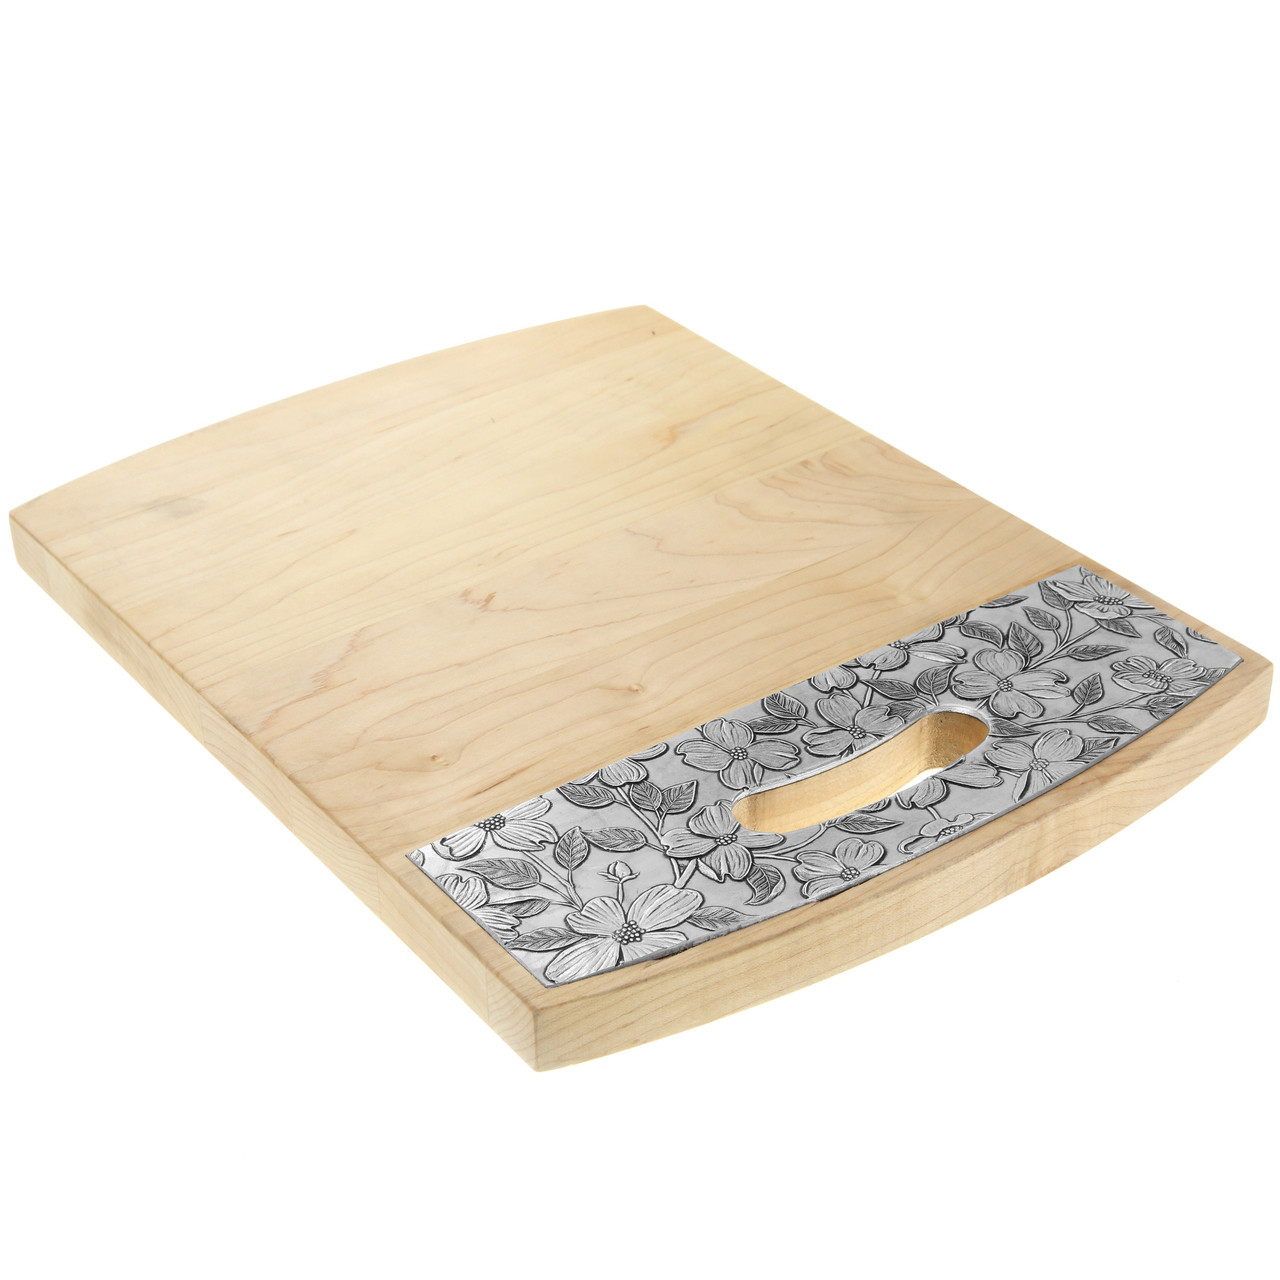 Wooden Cutting Boards Dogwood In Warther Maple Wendell August